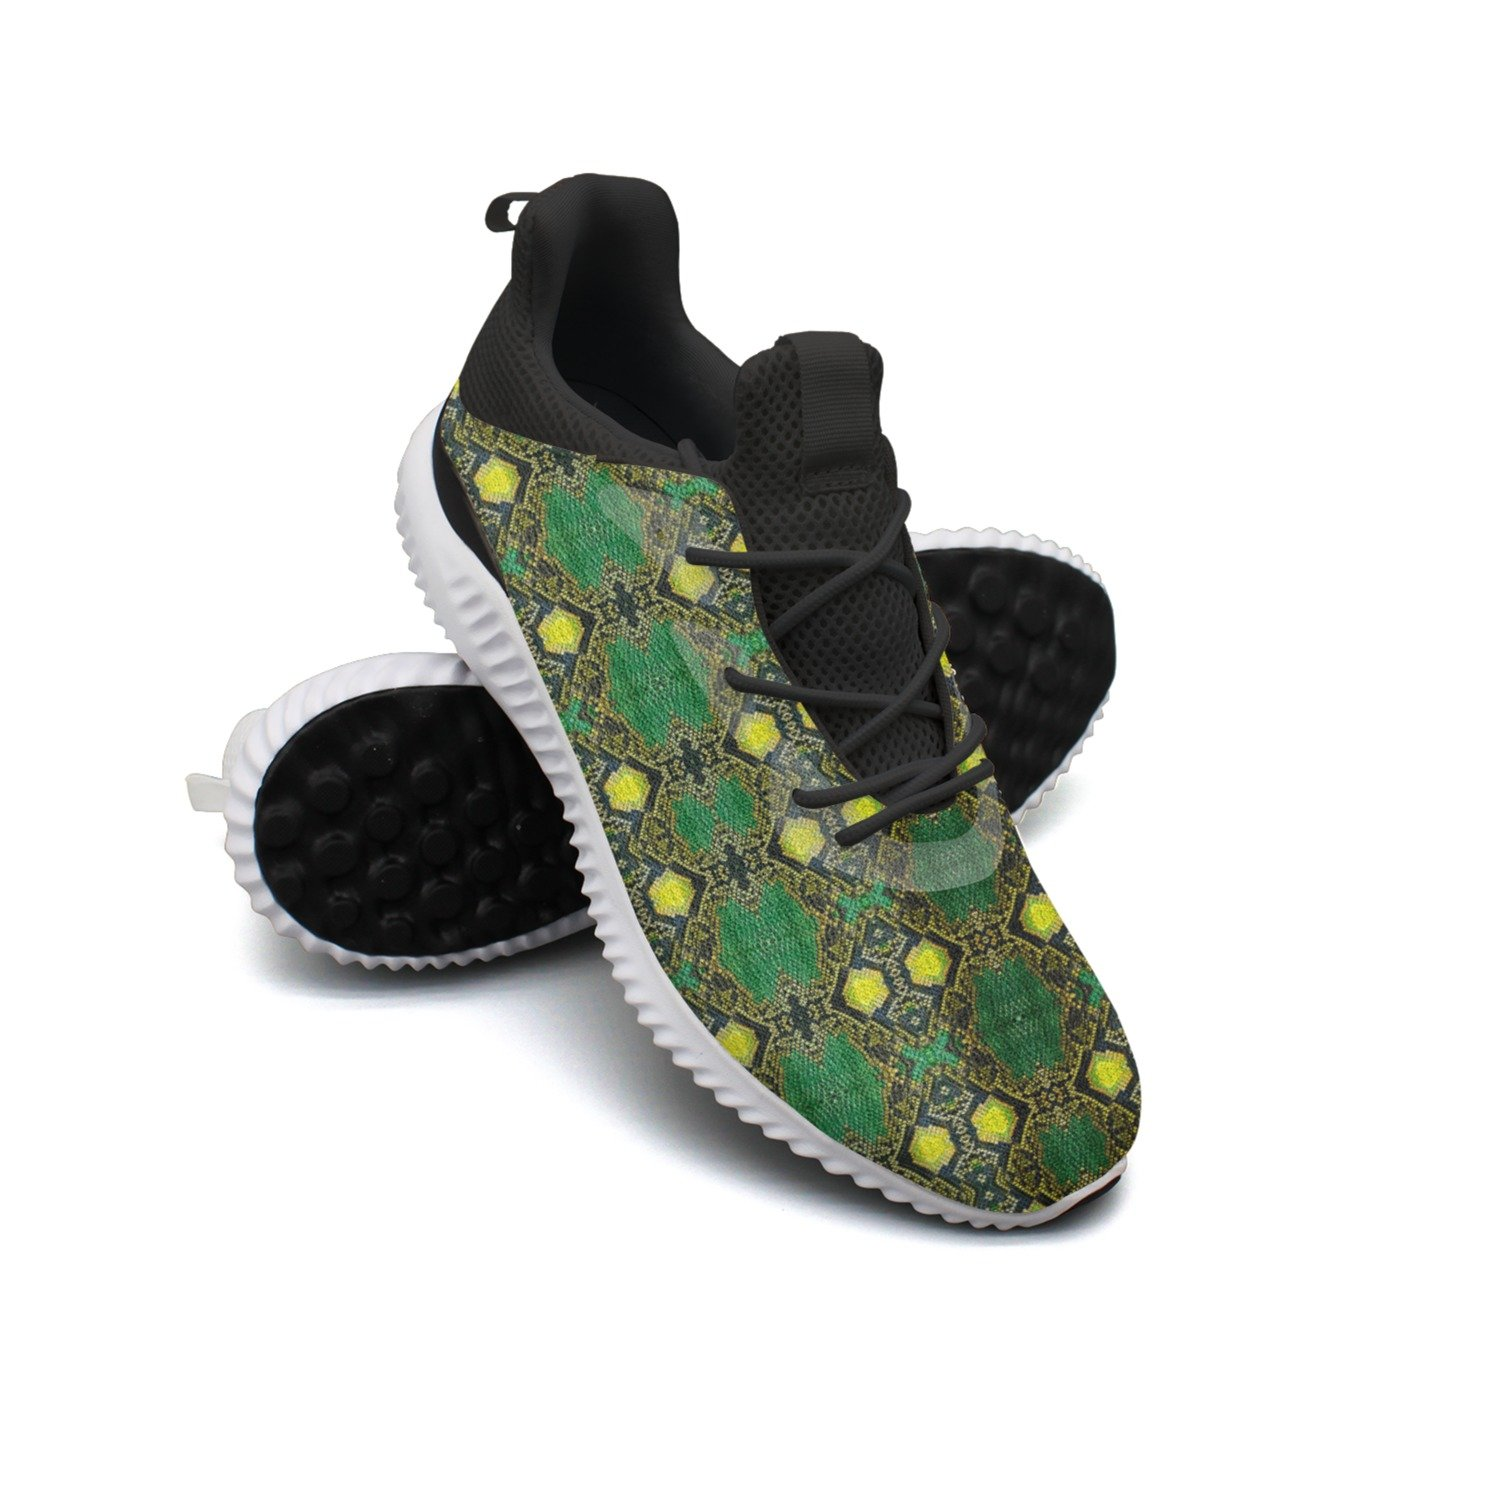 Green Snake Skin Leisure Design Running Shoes Womens Printing Cool Colorful